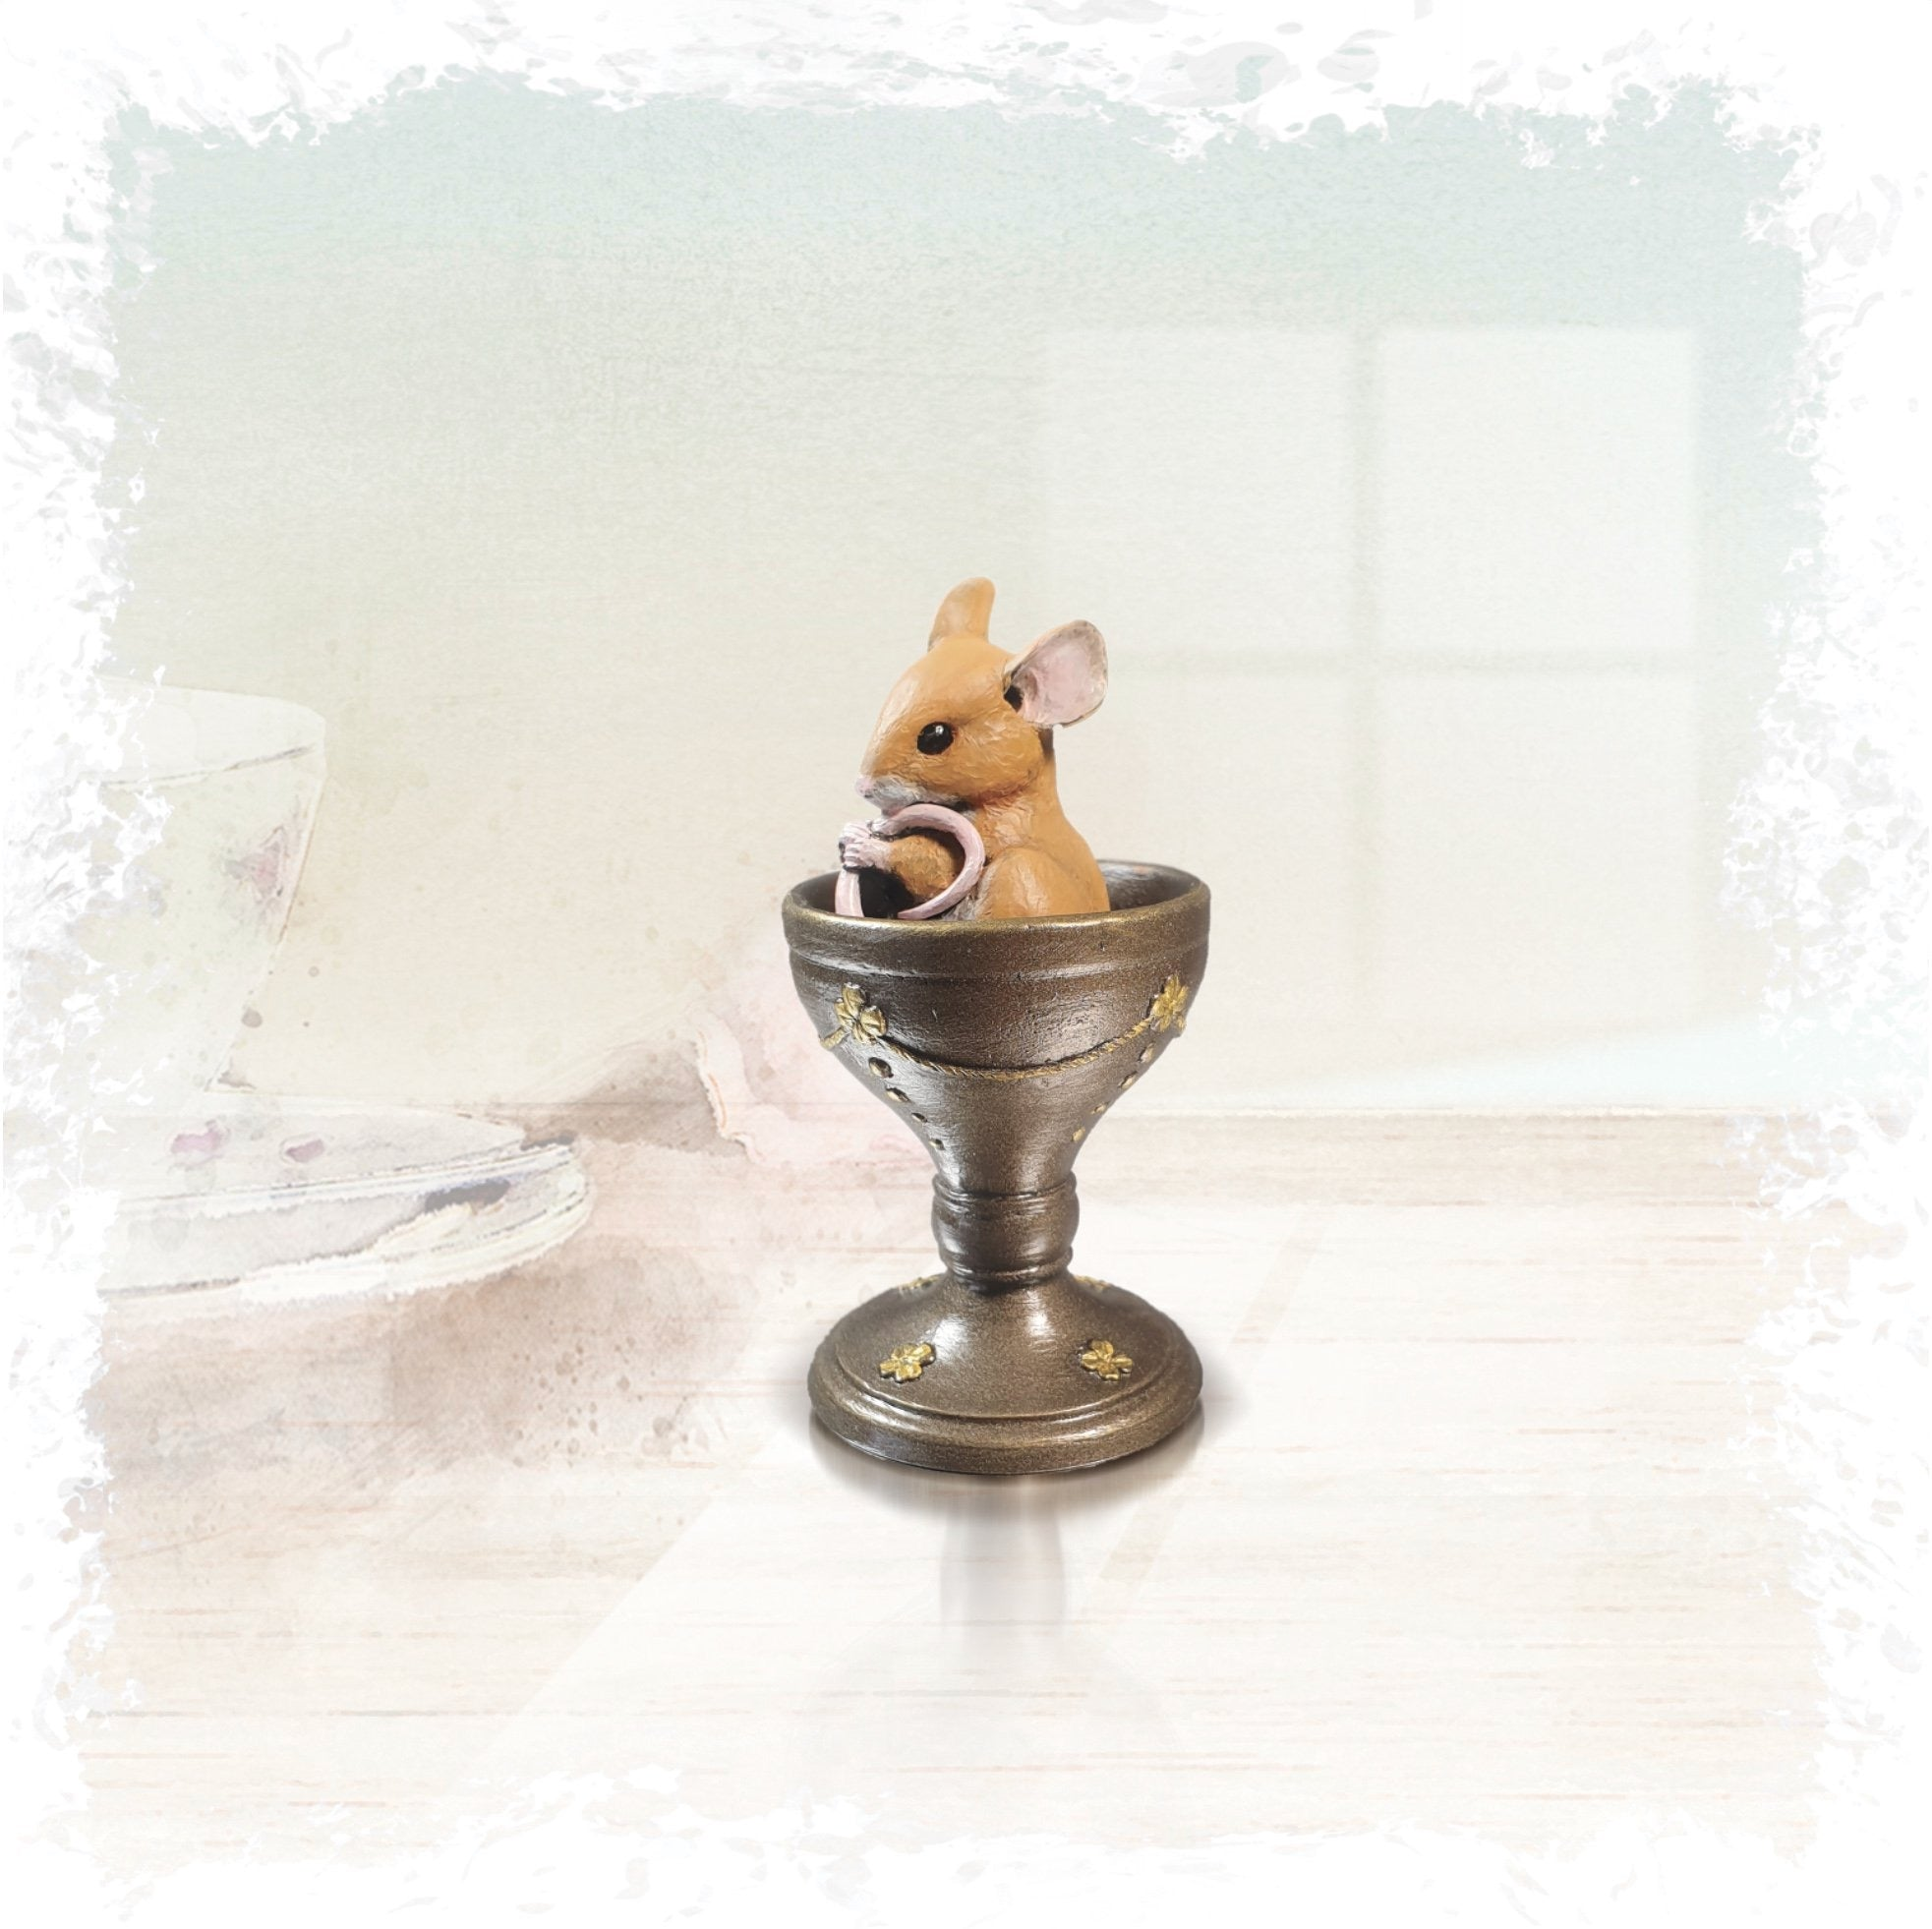 Richard Cooper Studio Cold Cast & Hand Painted Bronze Egg Cup by Michael Simpson